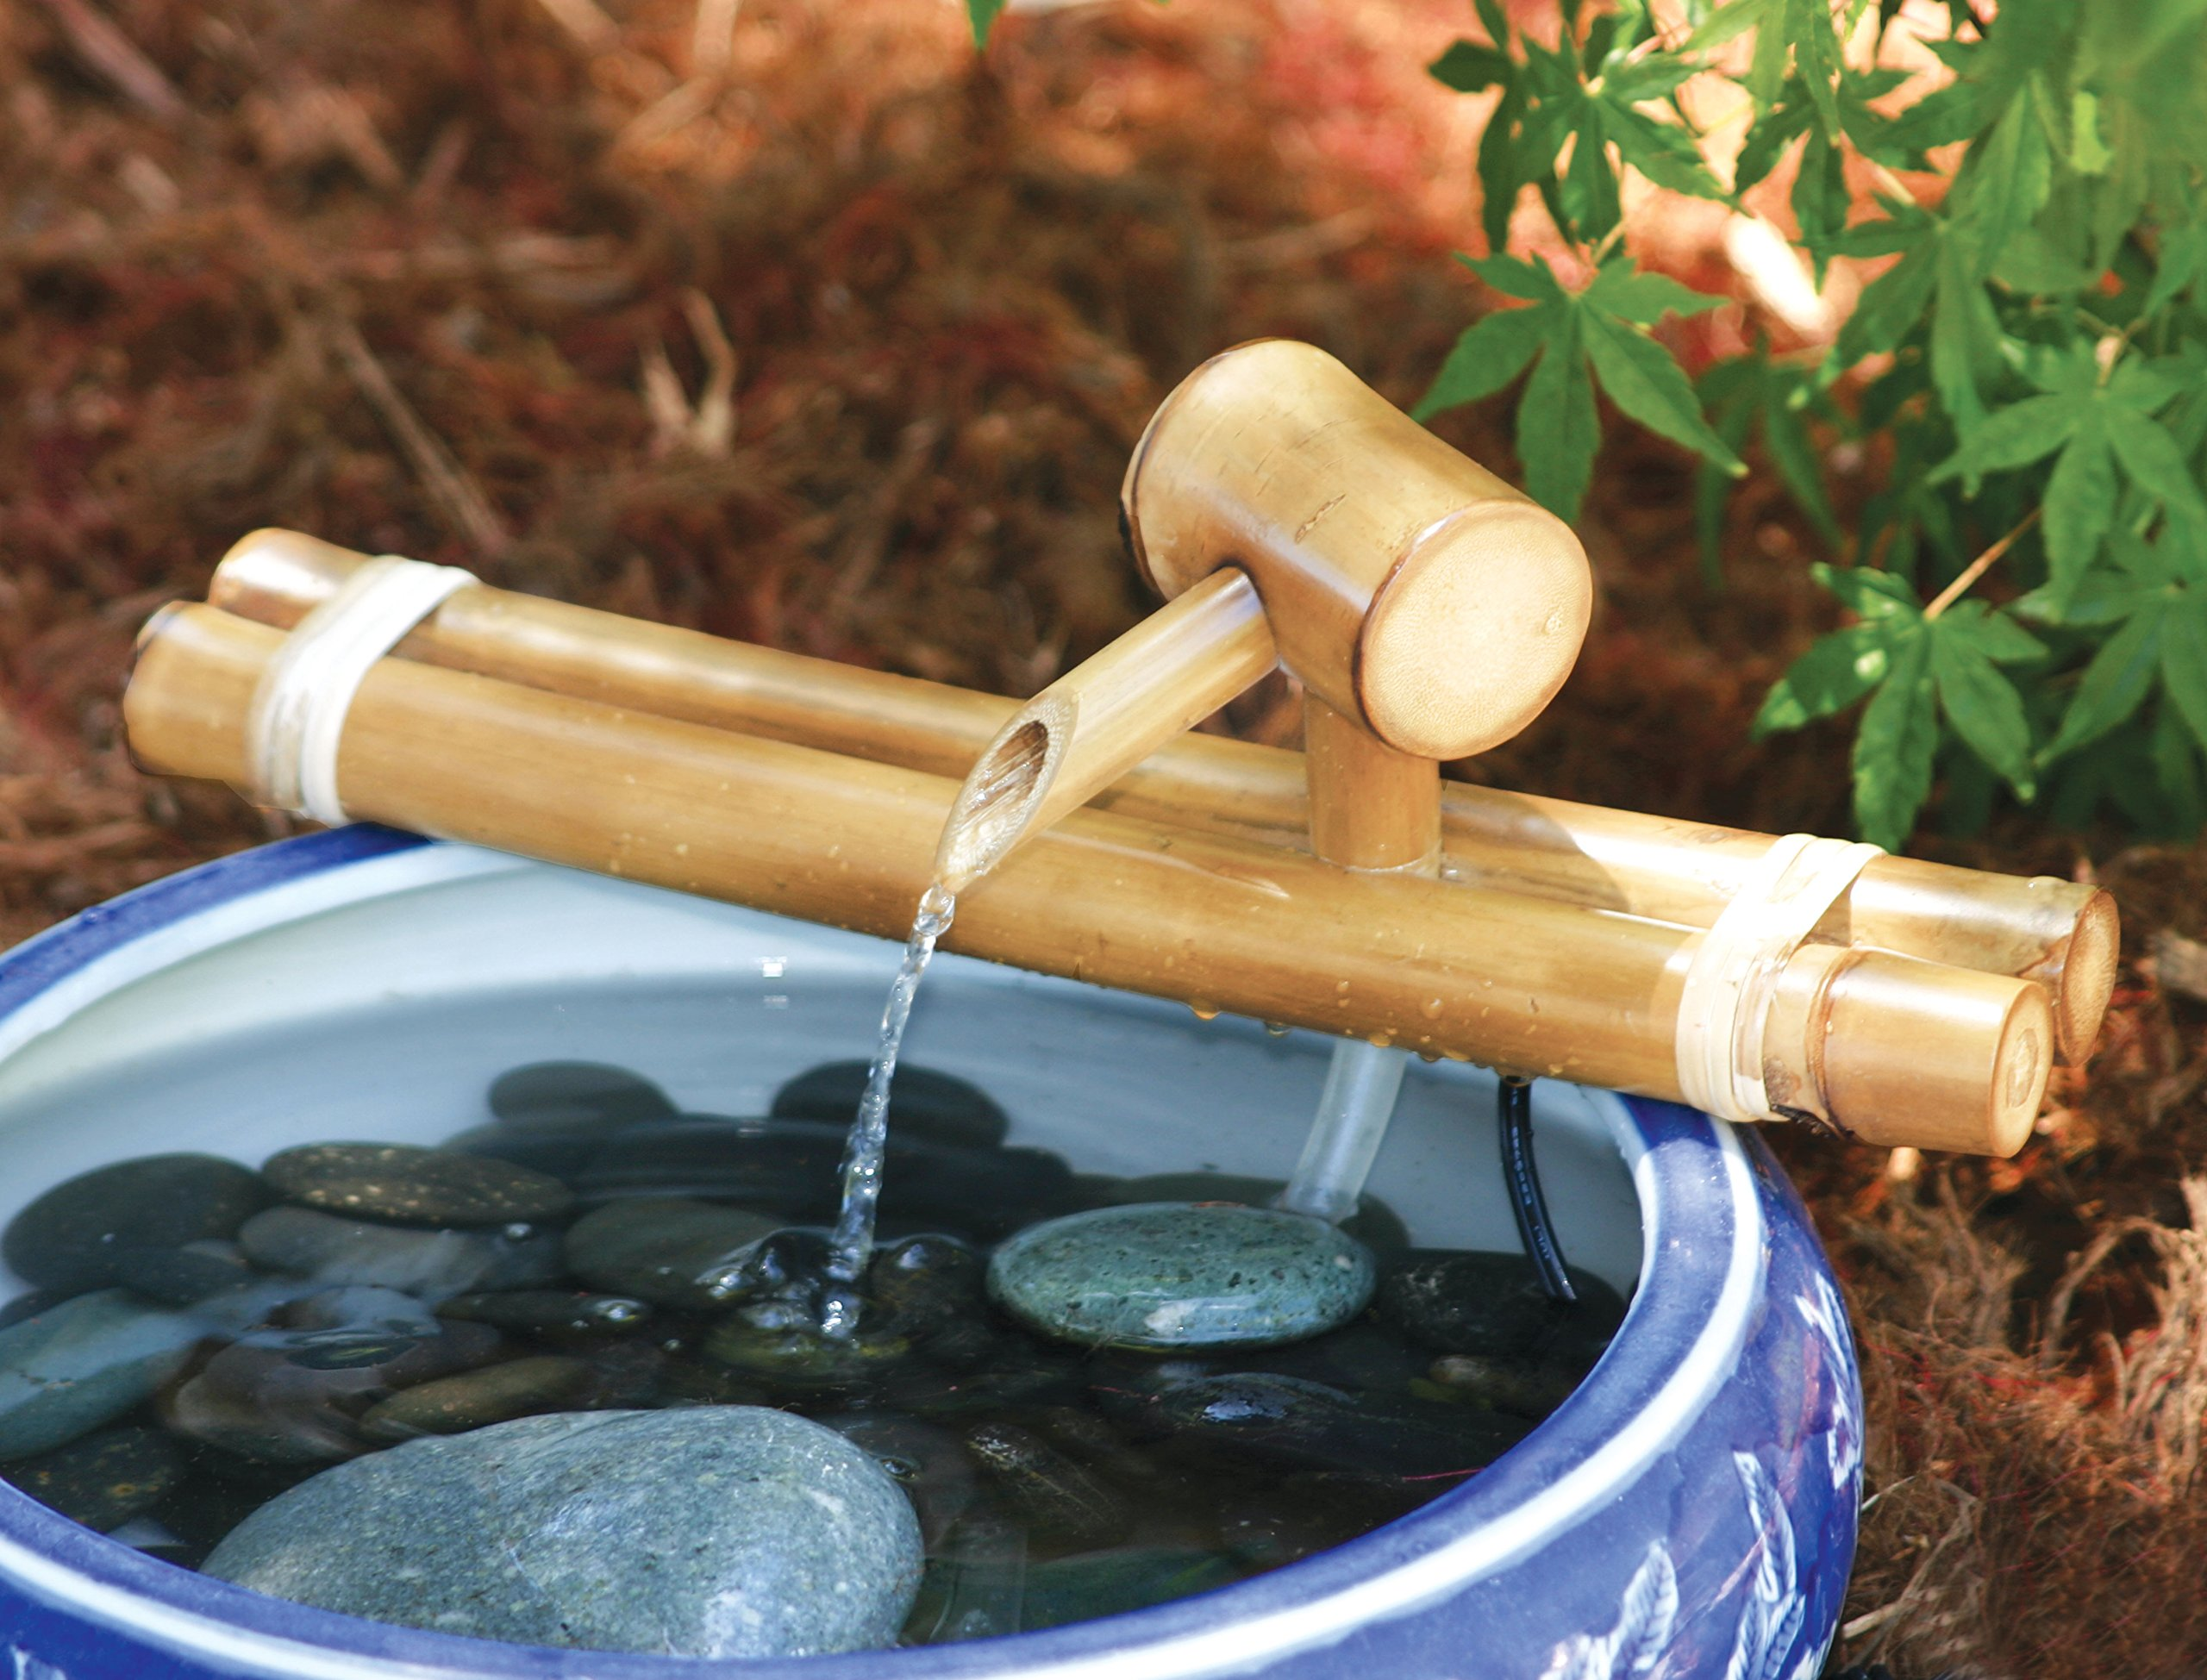 Bamboo Accents 12 Inch Classic Natural Bamboo Fountain and Pump Kit for Use with Any Container. Split Resistant, Handmade, Indoor Outdoor